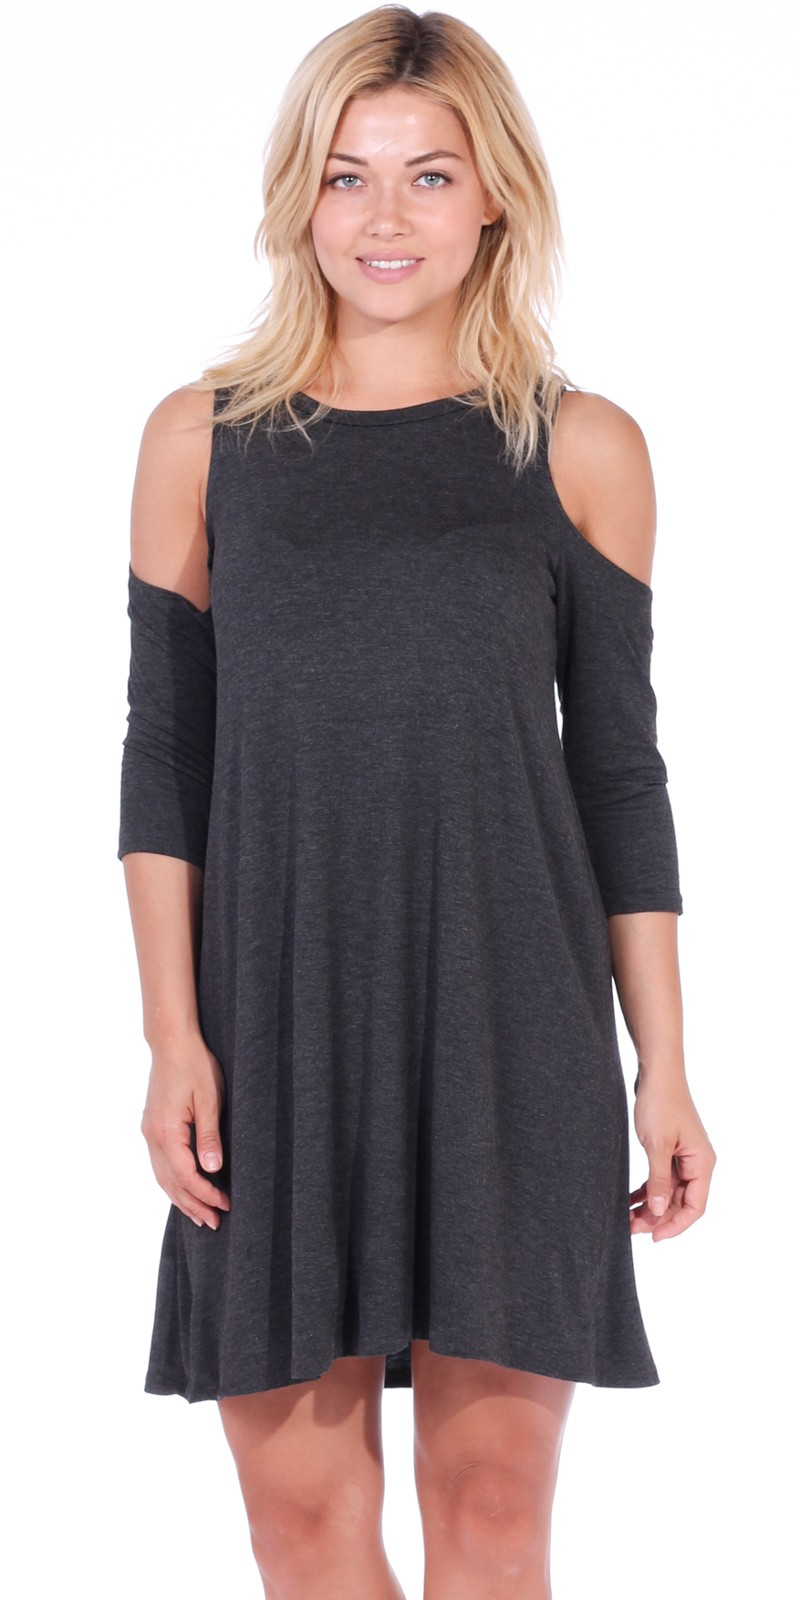 Womens Cold Shoulder Shift Flowy Dress Round Neck 3/4 Sleeve - Made In USA - Charcoal